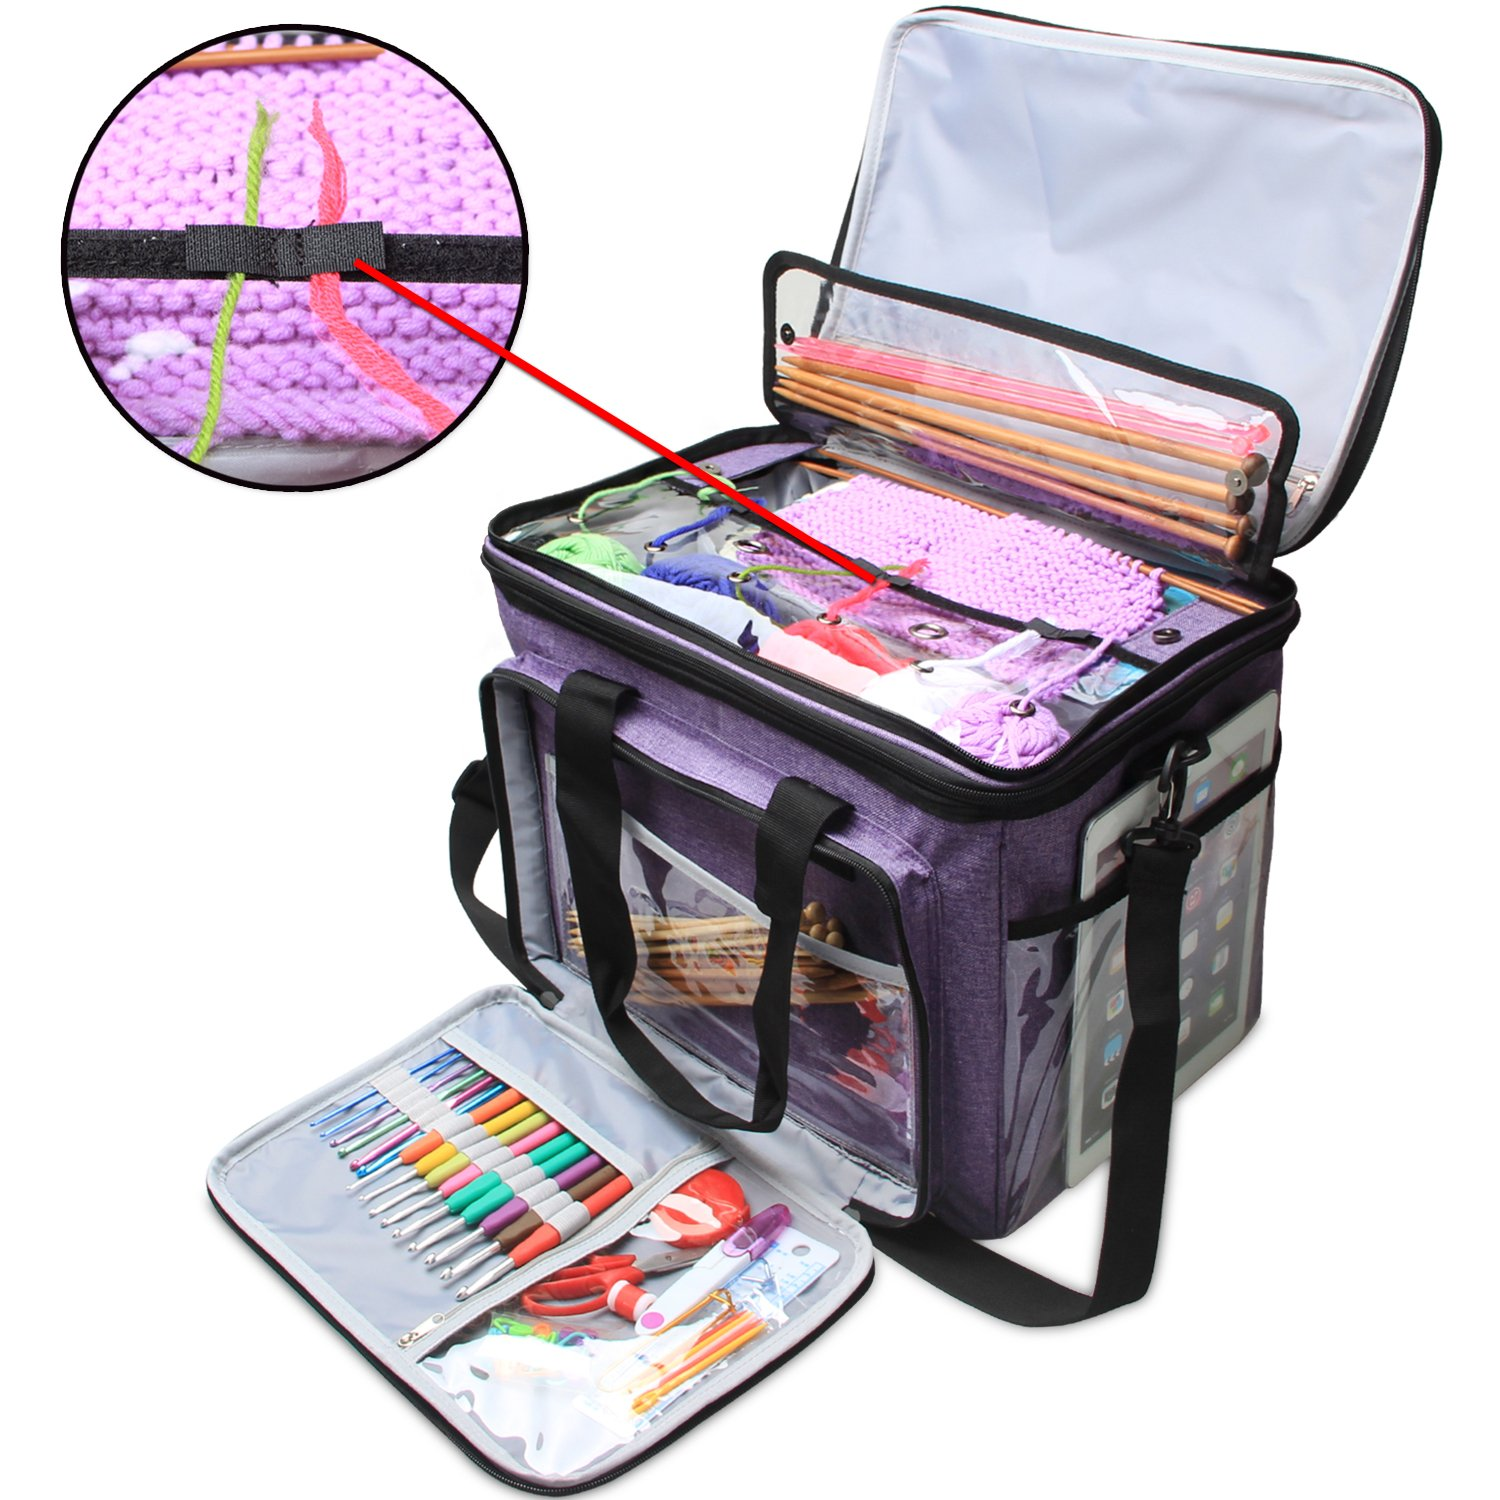 Teamoy Knitting Bag, Yarn Tote Organizer with Cover and Inner Divider (Sewn to Bottom) for Crochet Hooks, Knitting Needles(up to 14''), Project and Supplies, Purple(No Accessories Included) by Teamoy (Image #1)